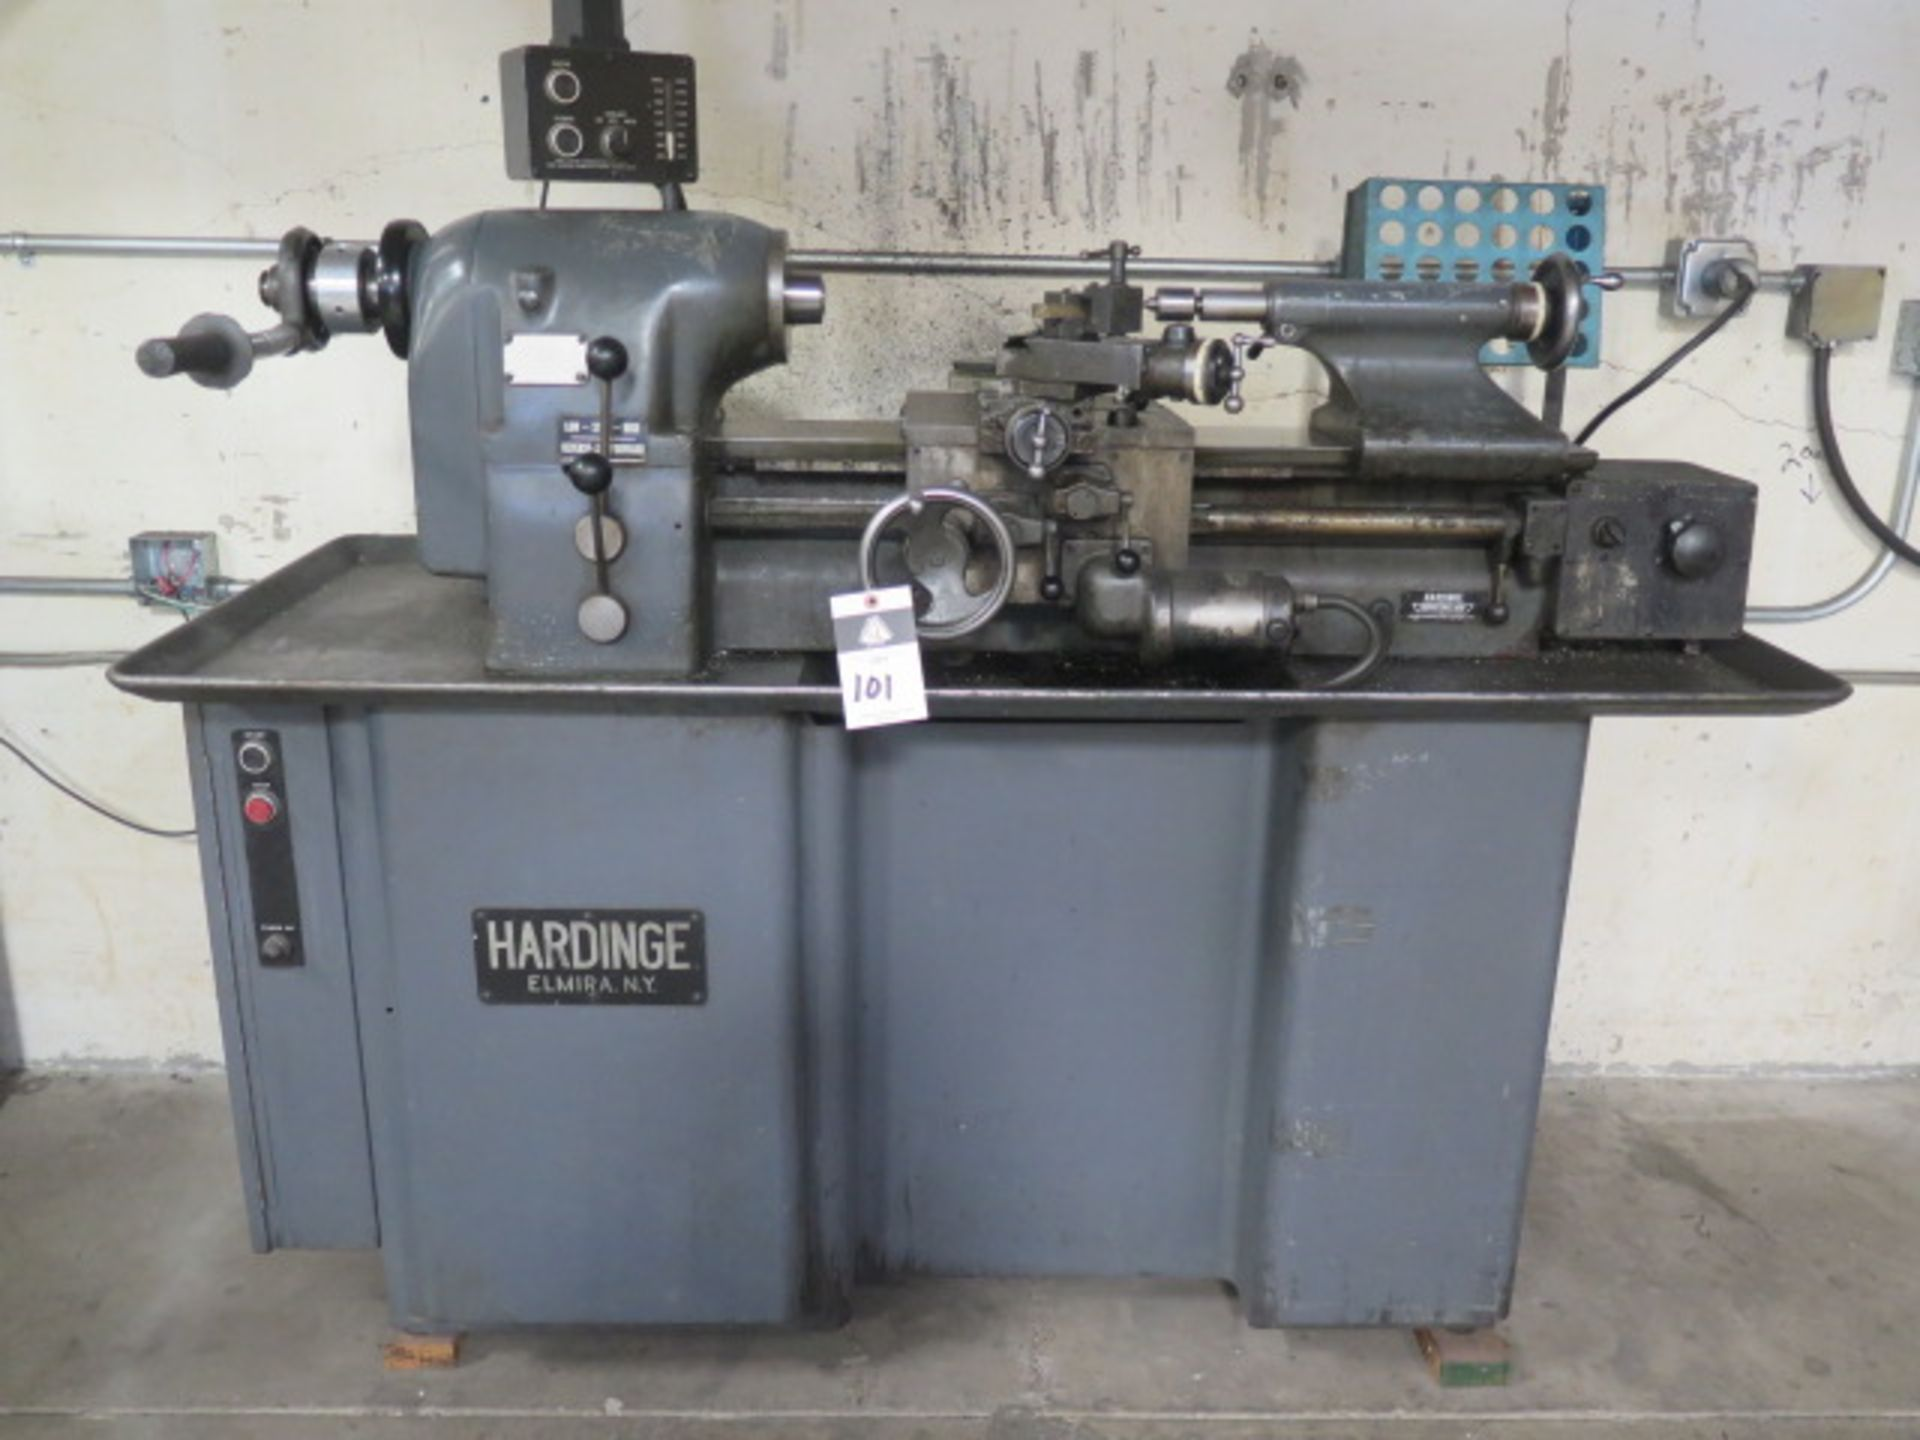 Hardinge TFB-H Wide Bed Lathe w/ 125-3000 RPM, Tailstock, Power Feed, 5C Collet Closer, Coolant (